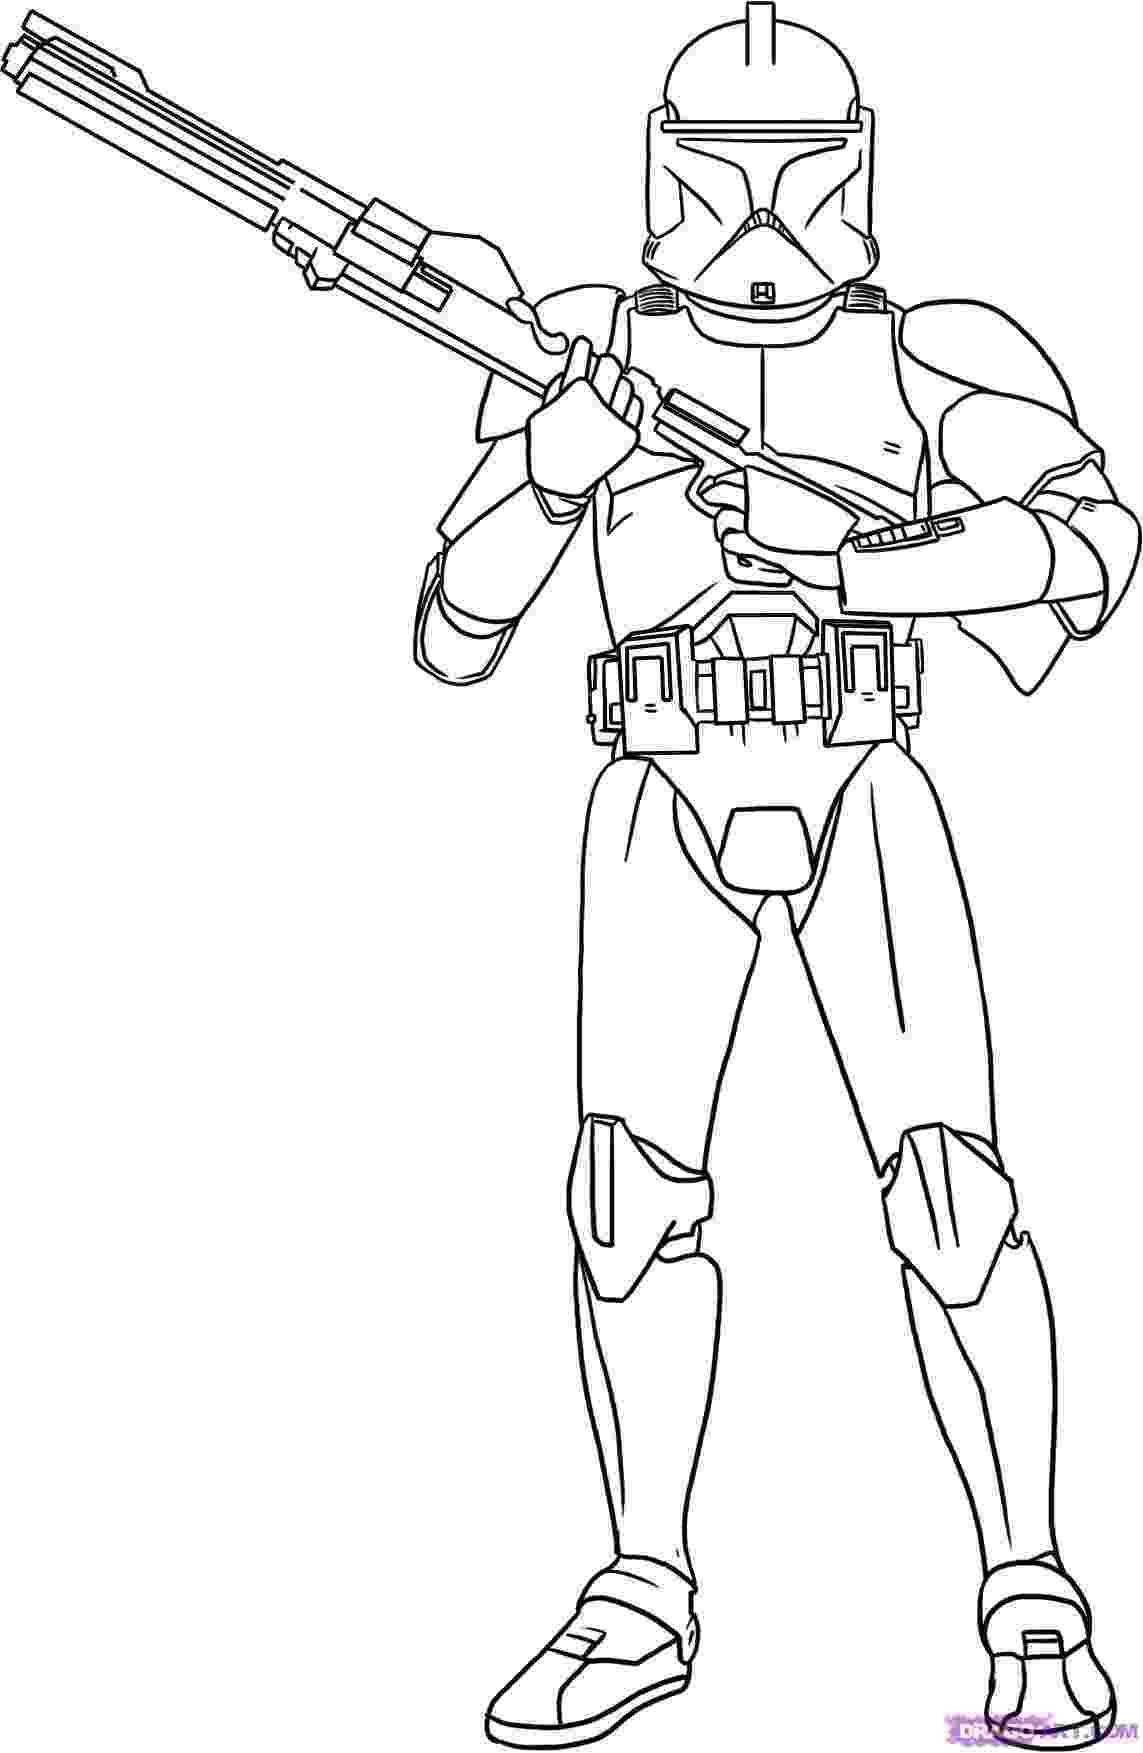 star wars free coloring pages star wars coloring pages free printable star wars free coloring pages star wars